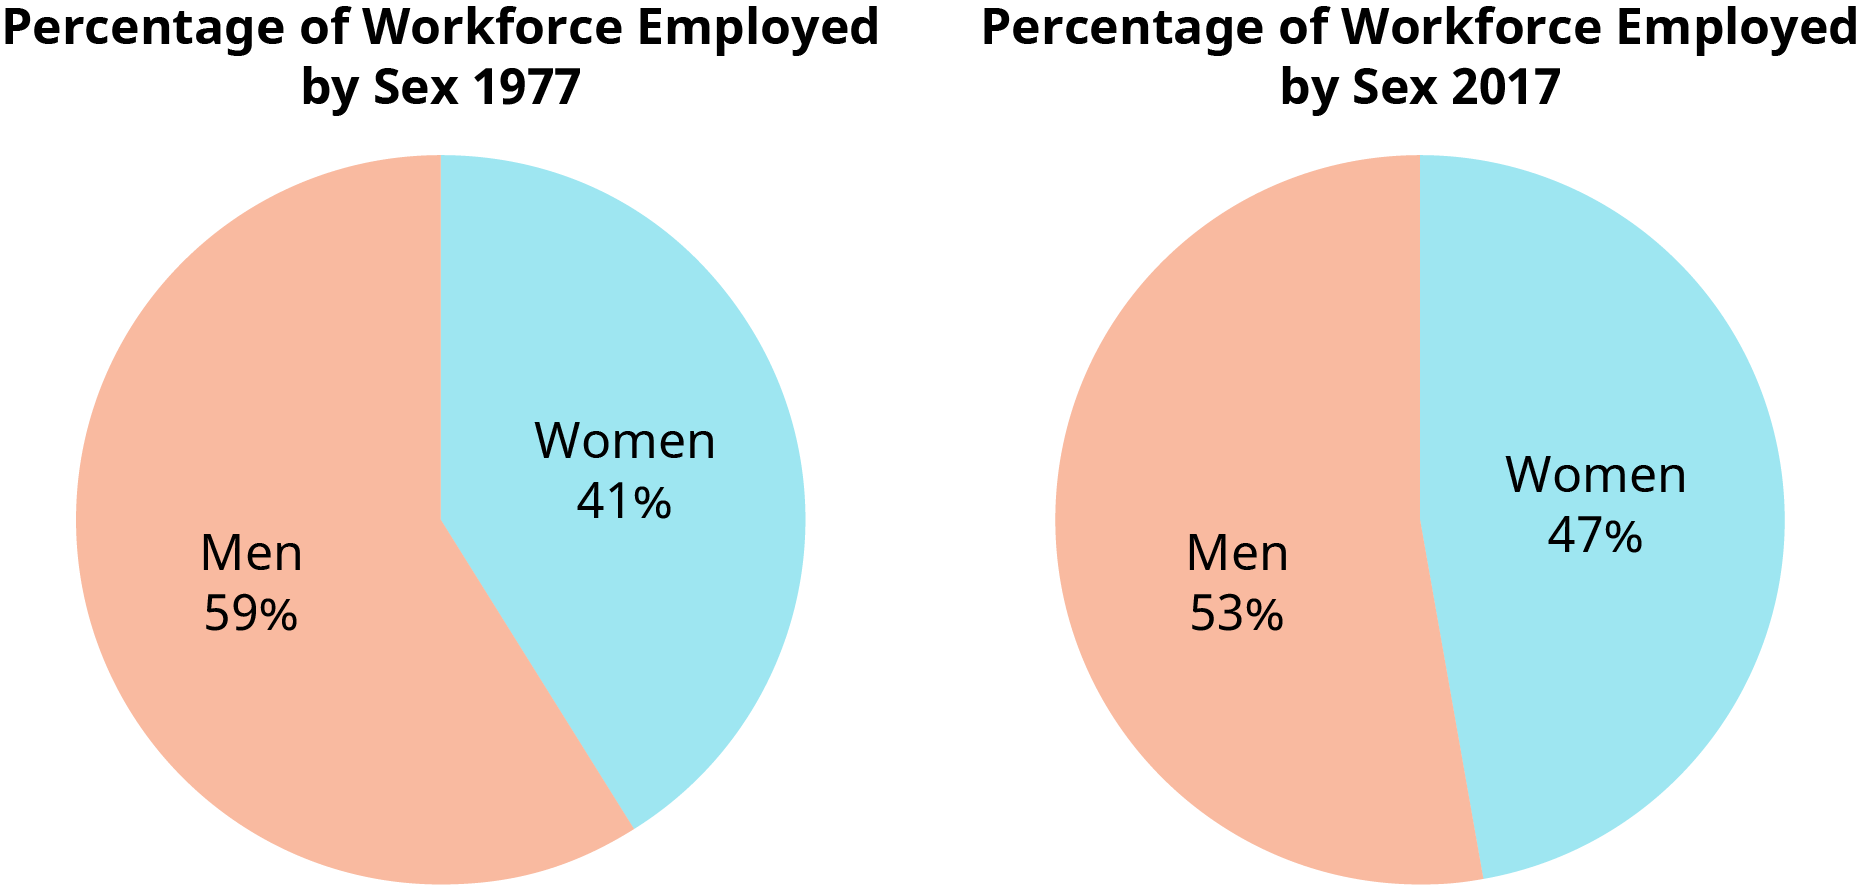 An illustration compares the percentage of the workforce by gender in 1977 to 2017.